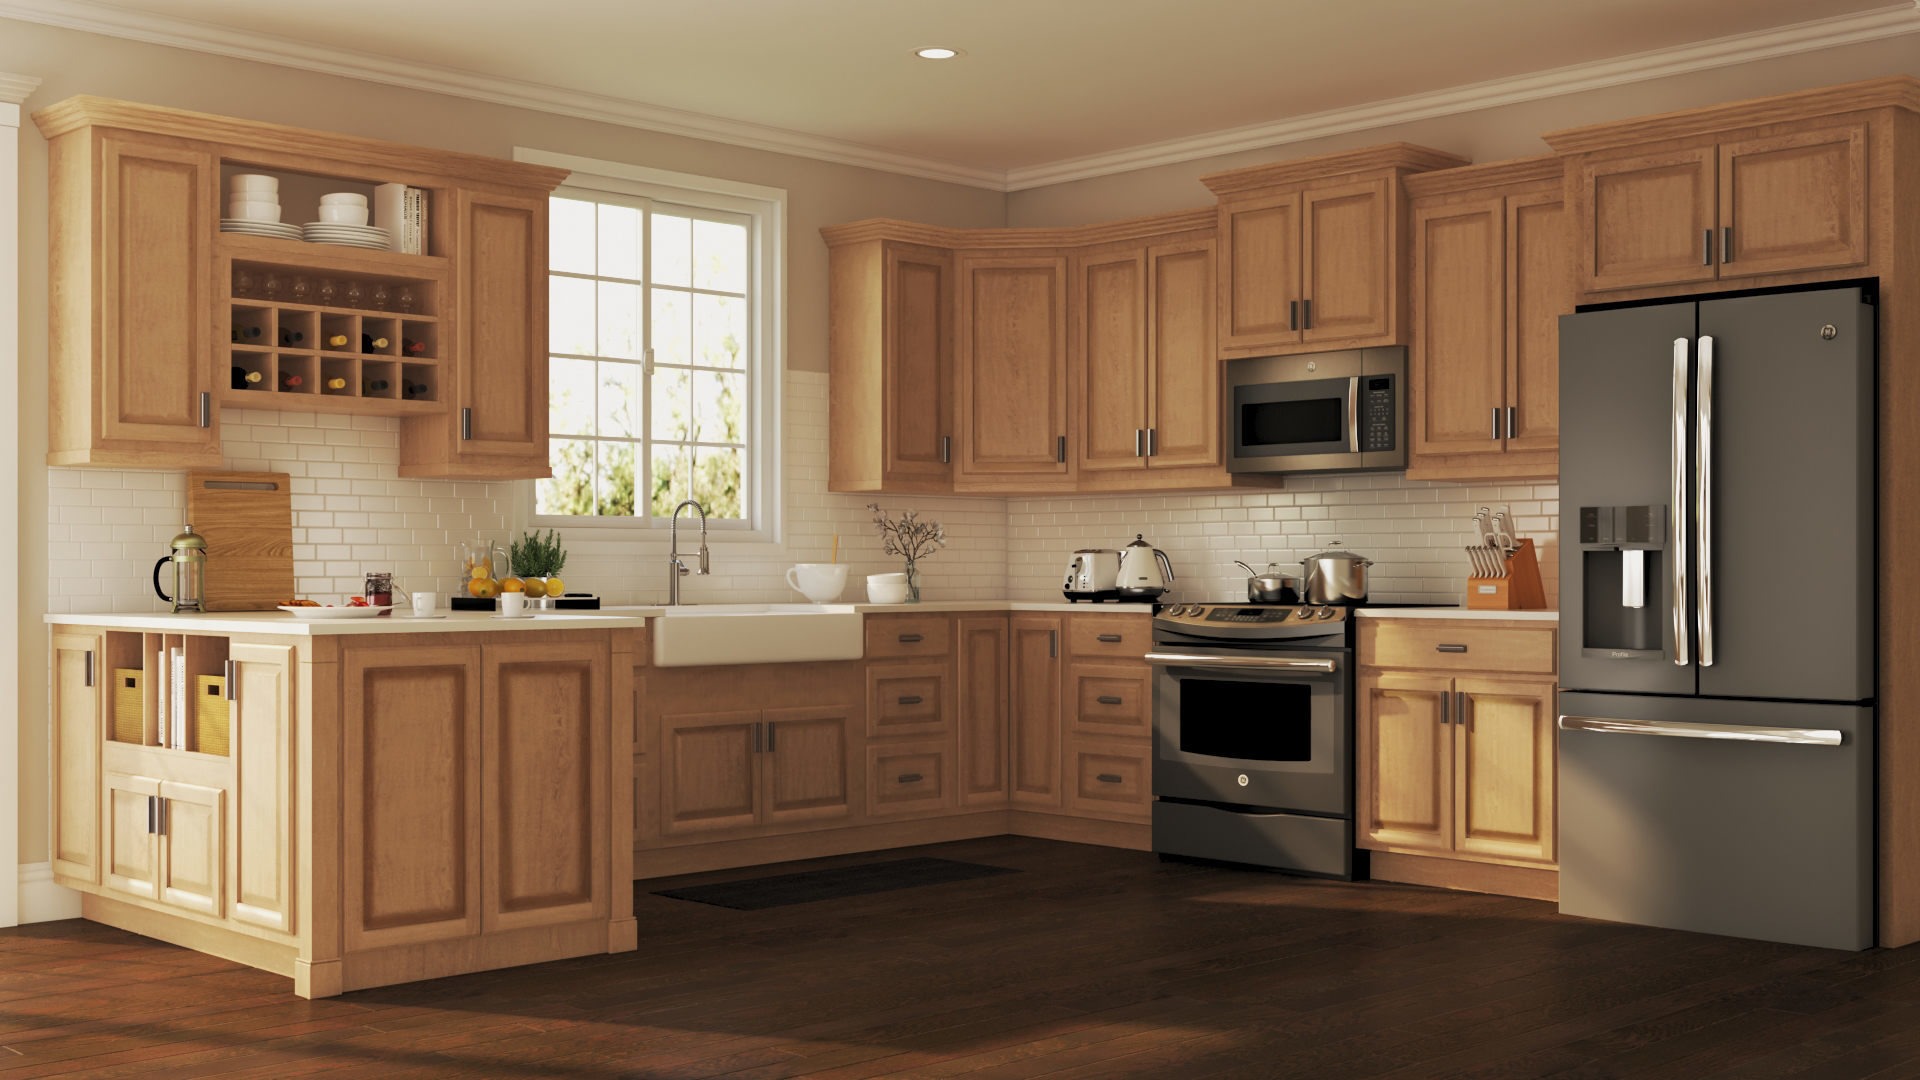 Delicieux Hampton Medium Oak Coordinating Cabinet Hardware U2013 Kitchen U2013 The Home Depot